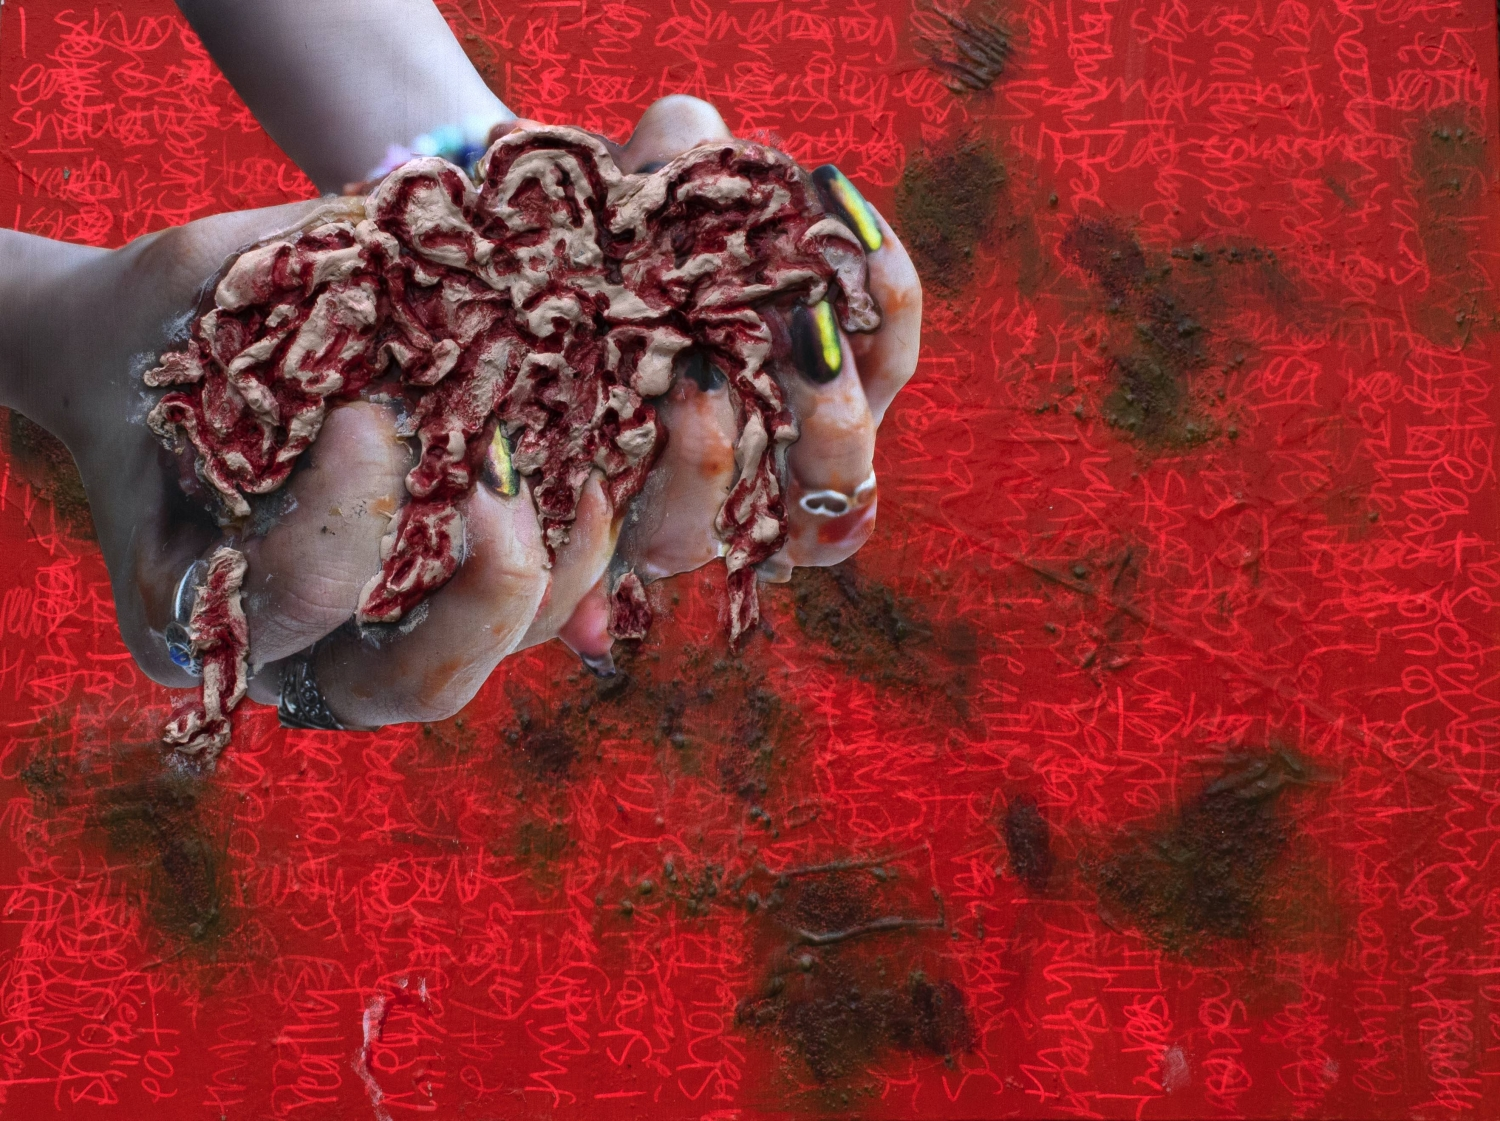 Red panel with collaged hands, holding expanding foam object.